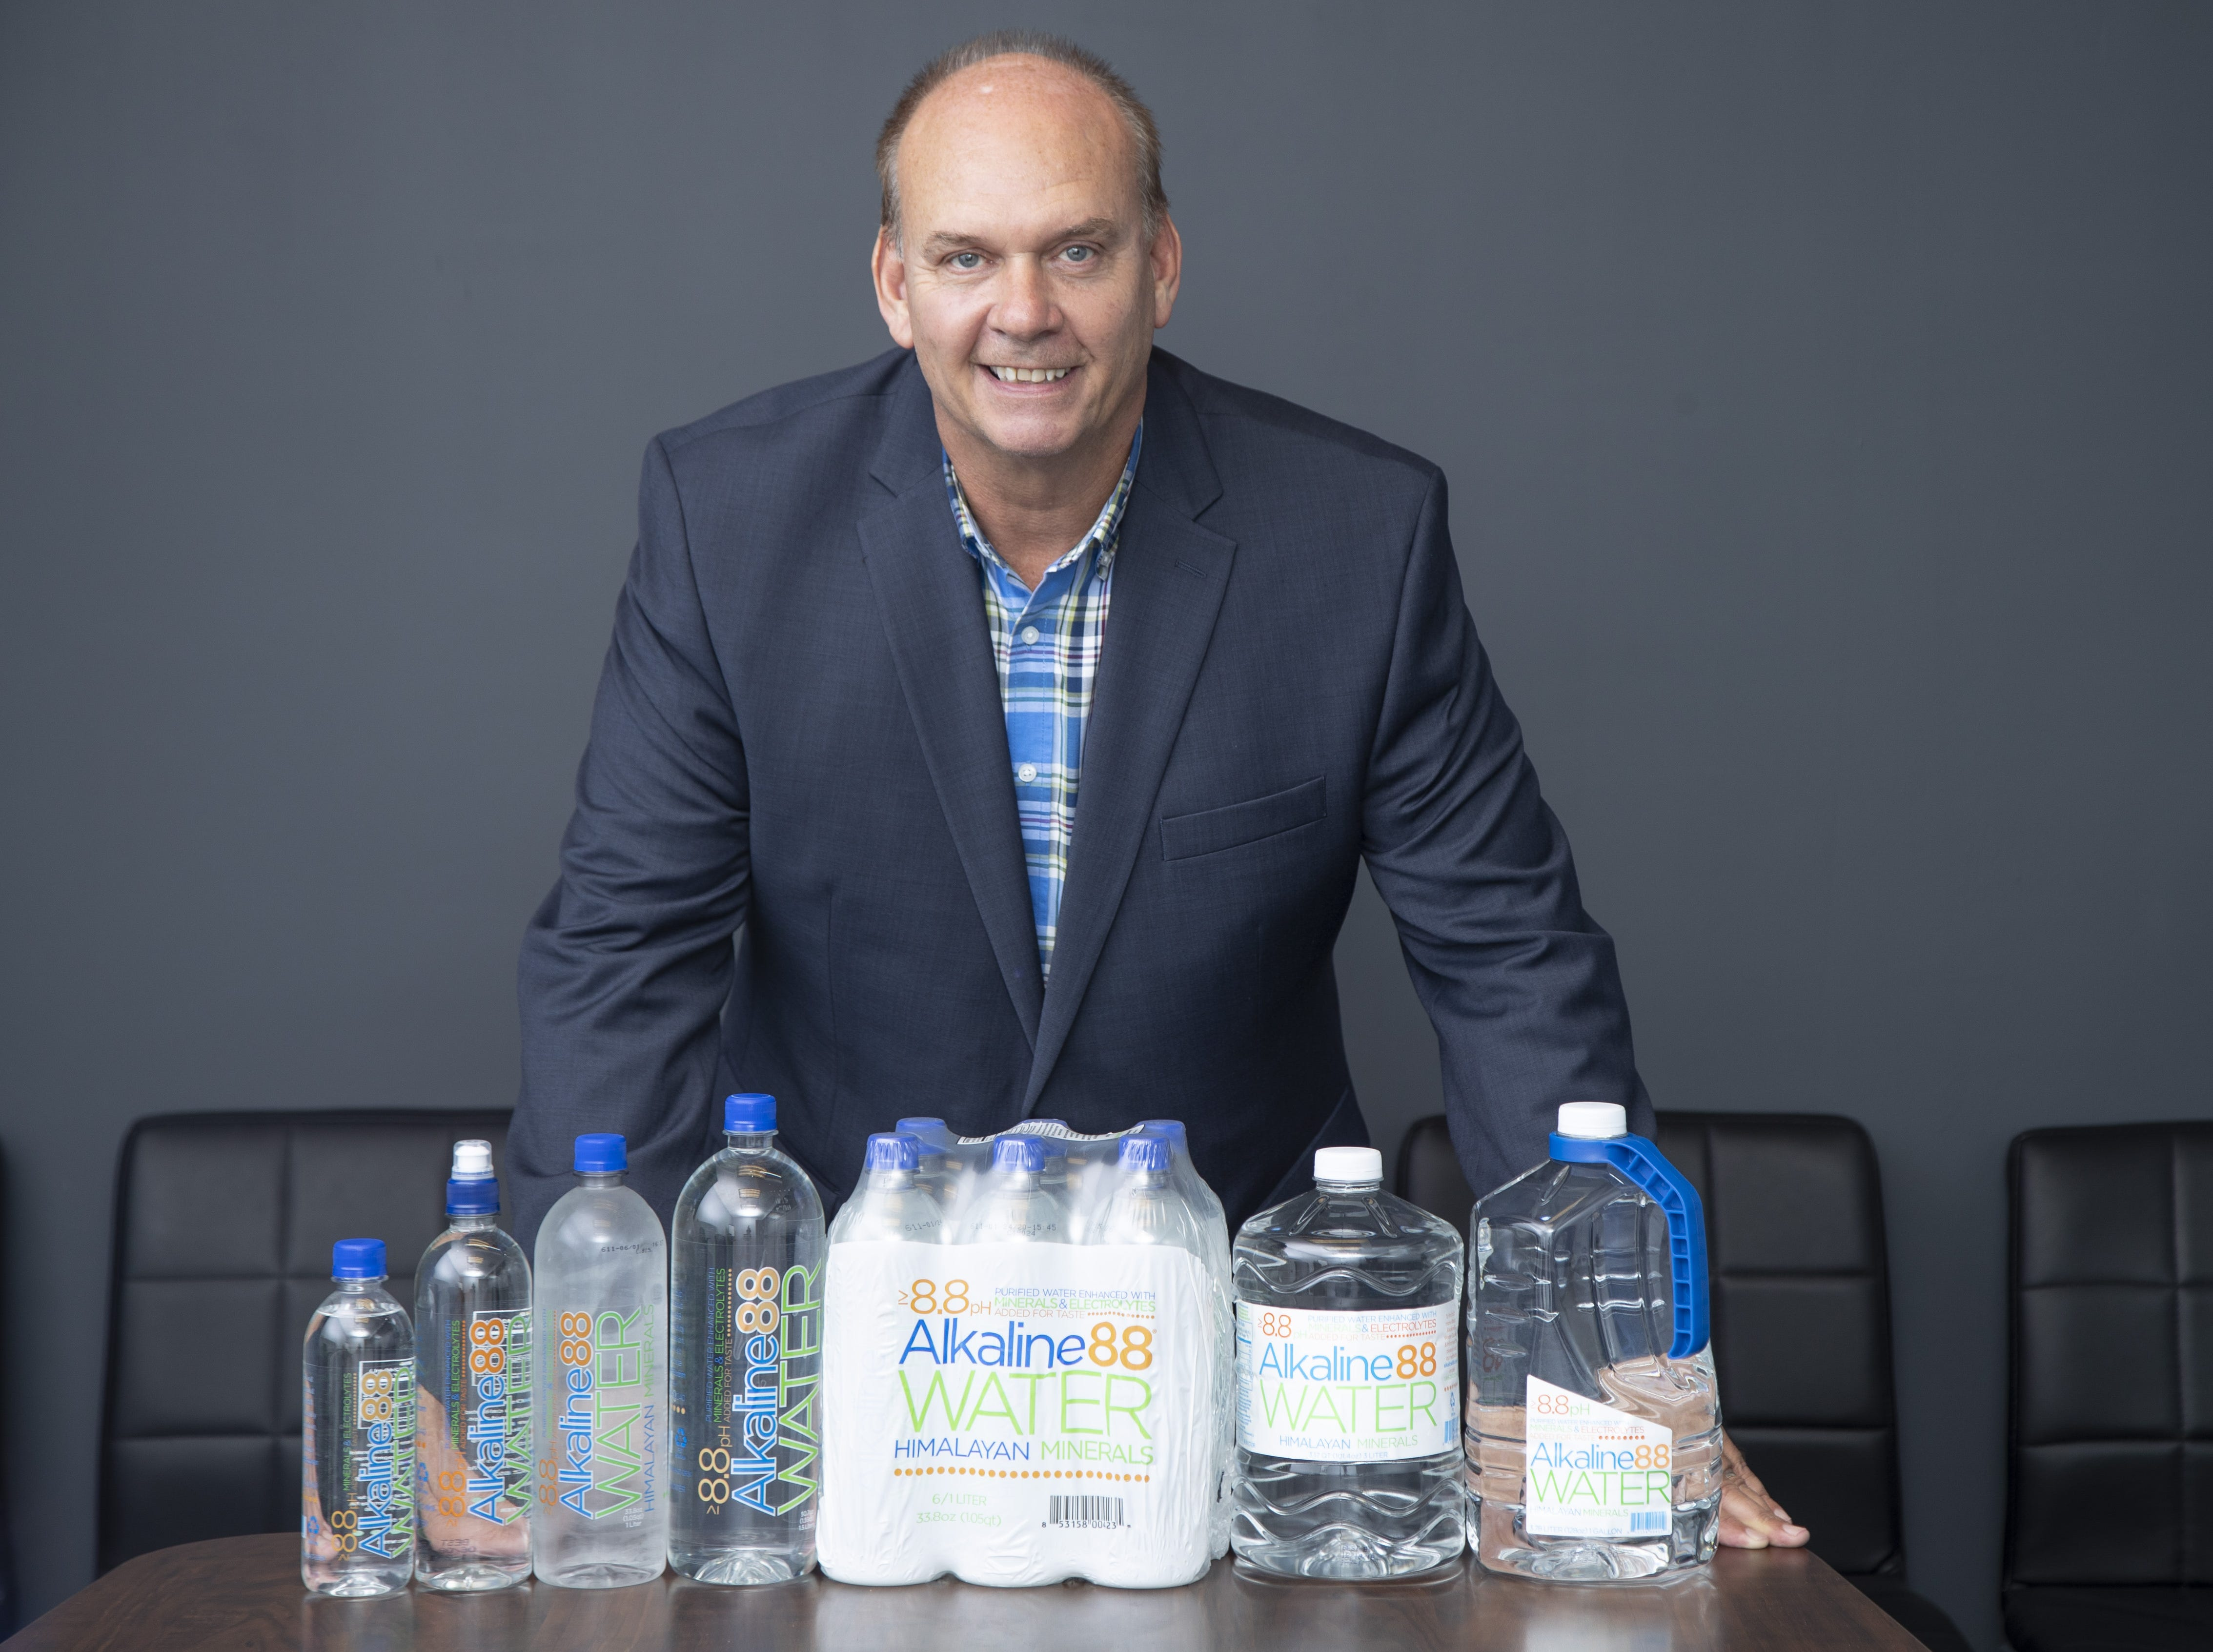 Ricky Wright is the CEO of The Alkaline Water Co., a Scottsdale water company that is capitalizing on a huge health and fitness trend.